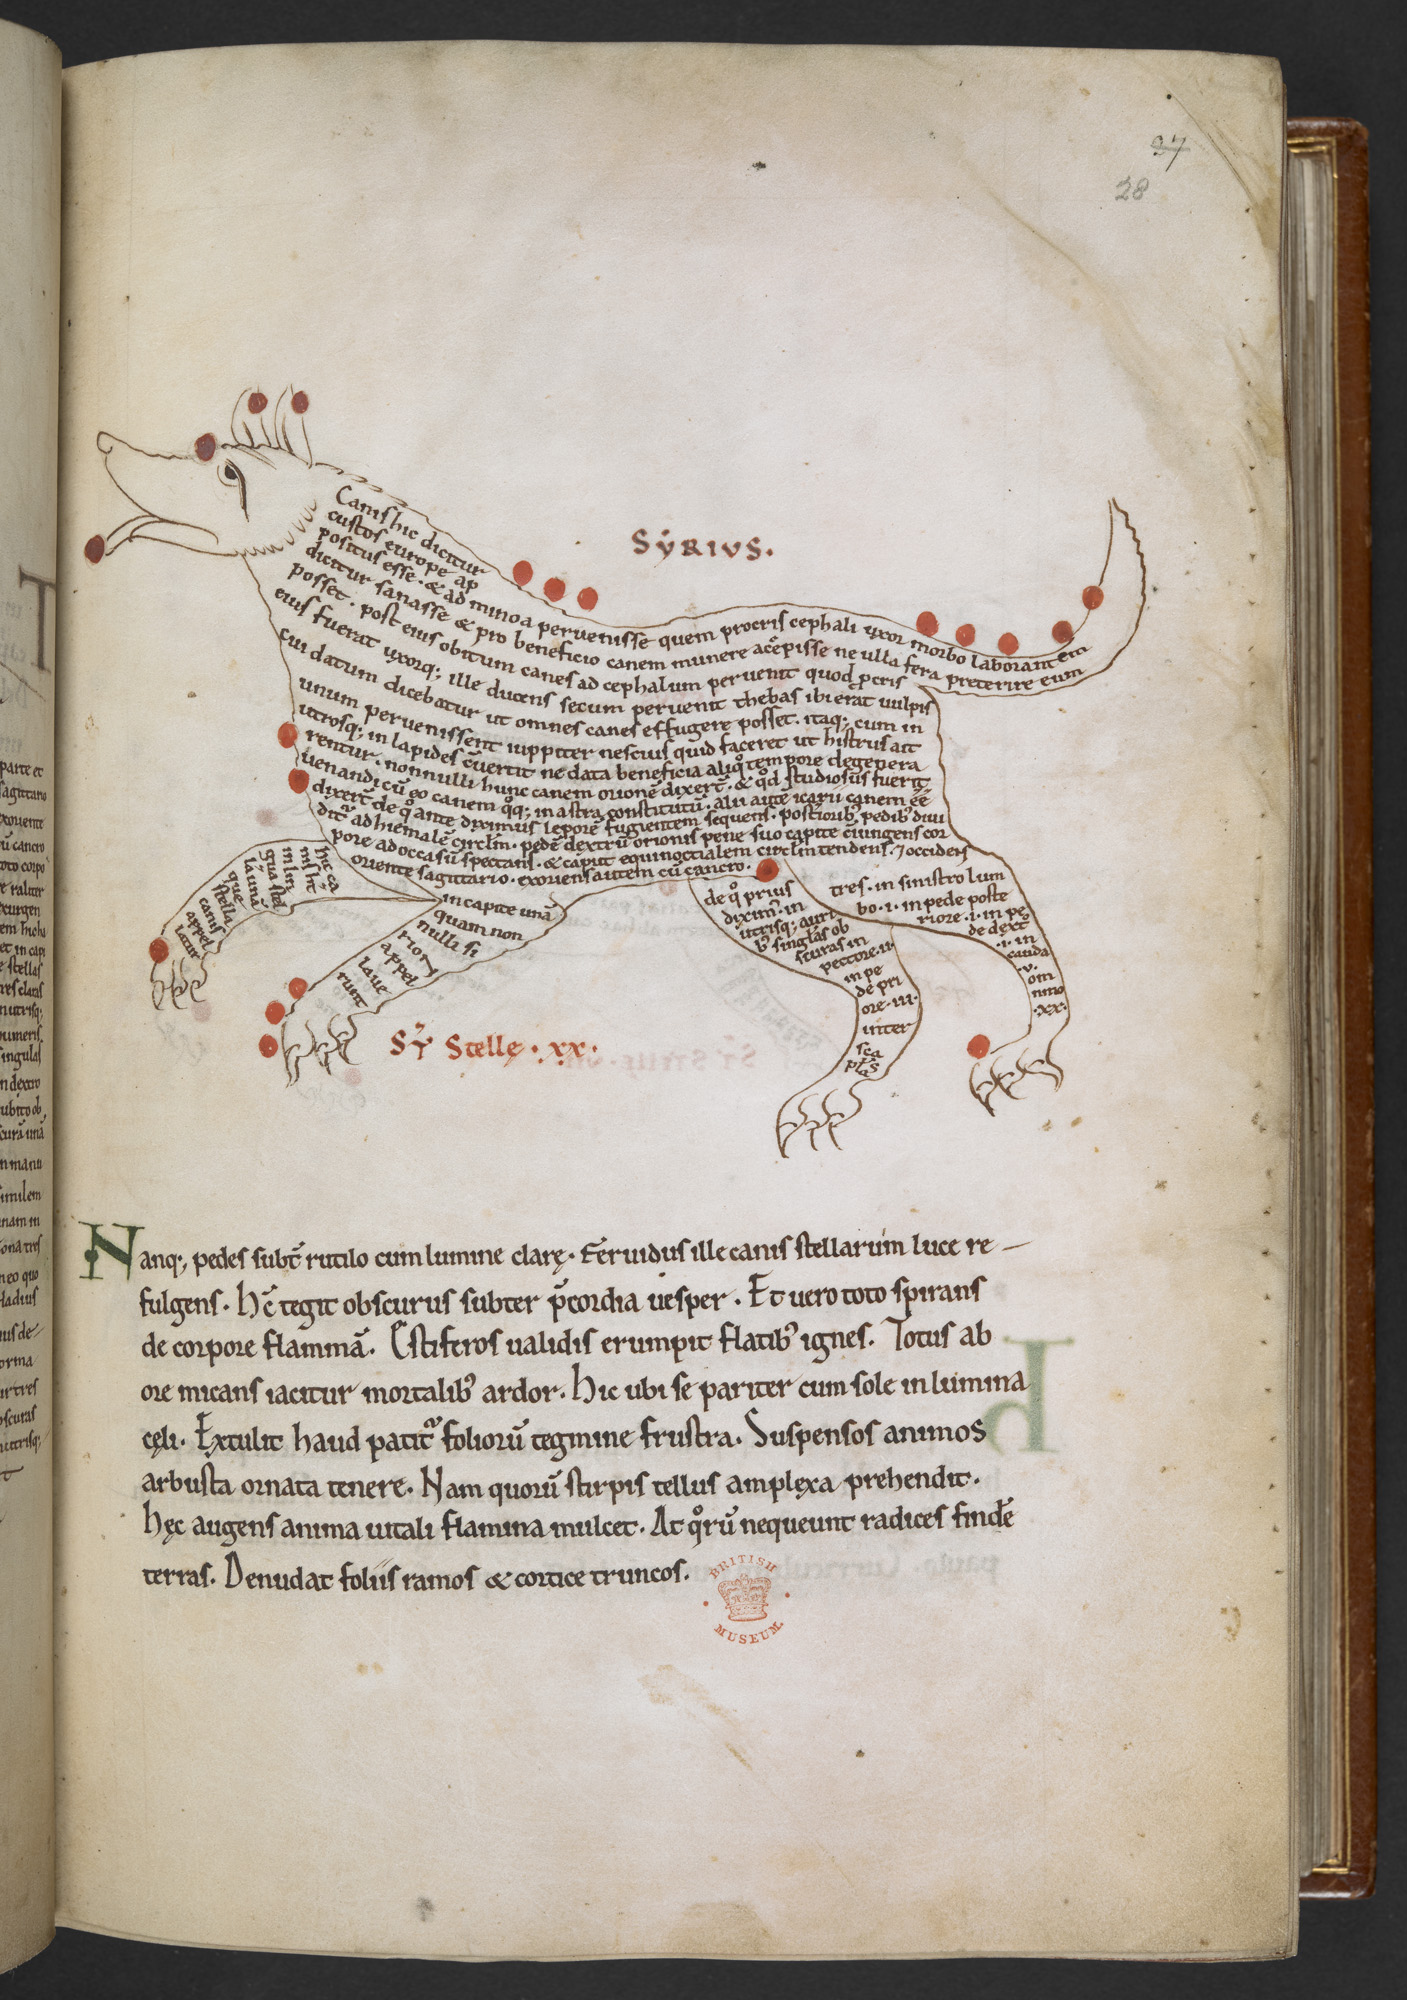 Cotton MS Tiberius C I, f. 28r